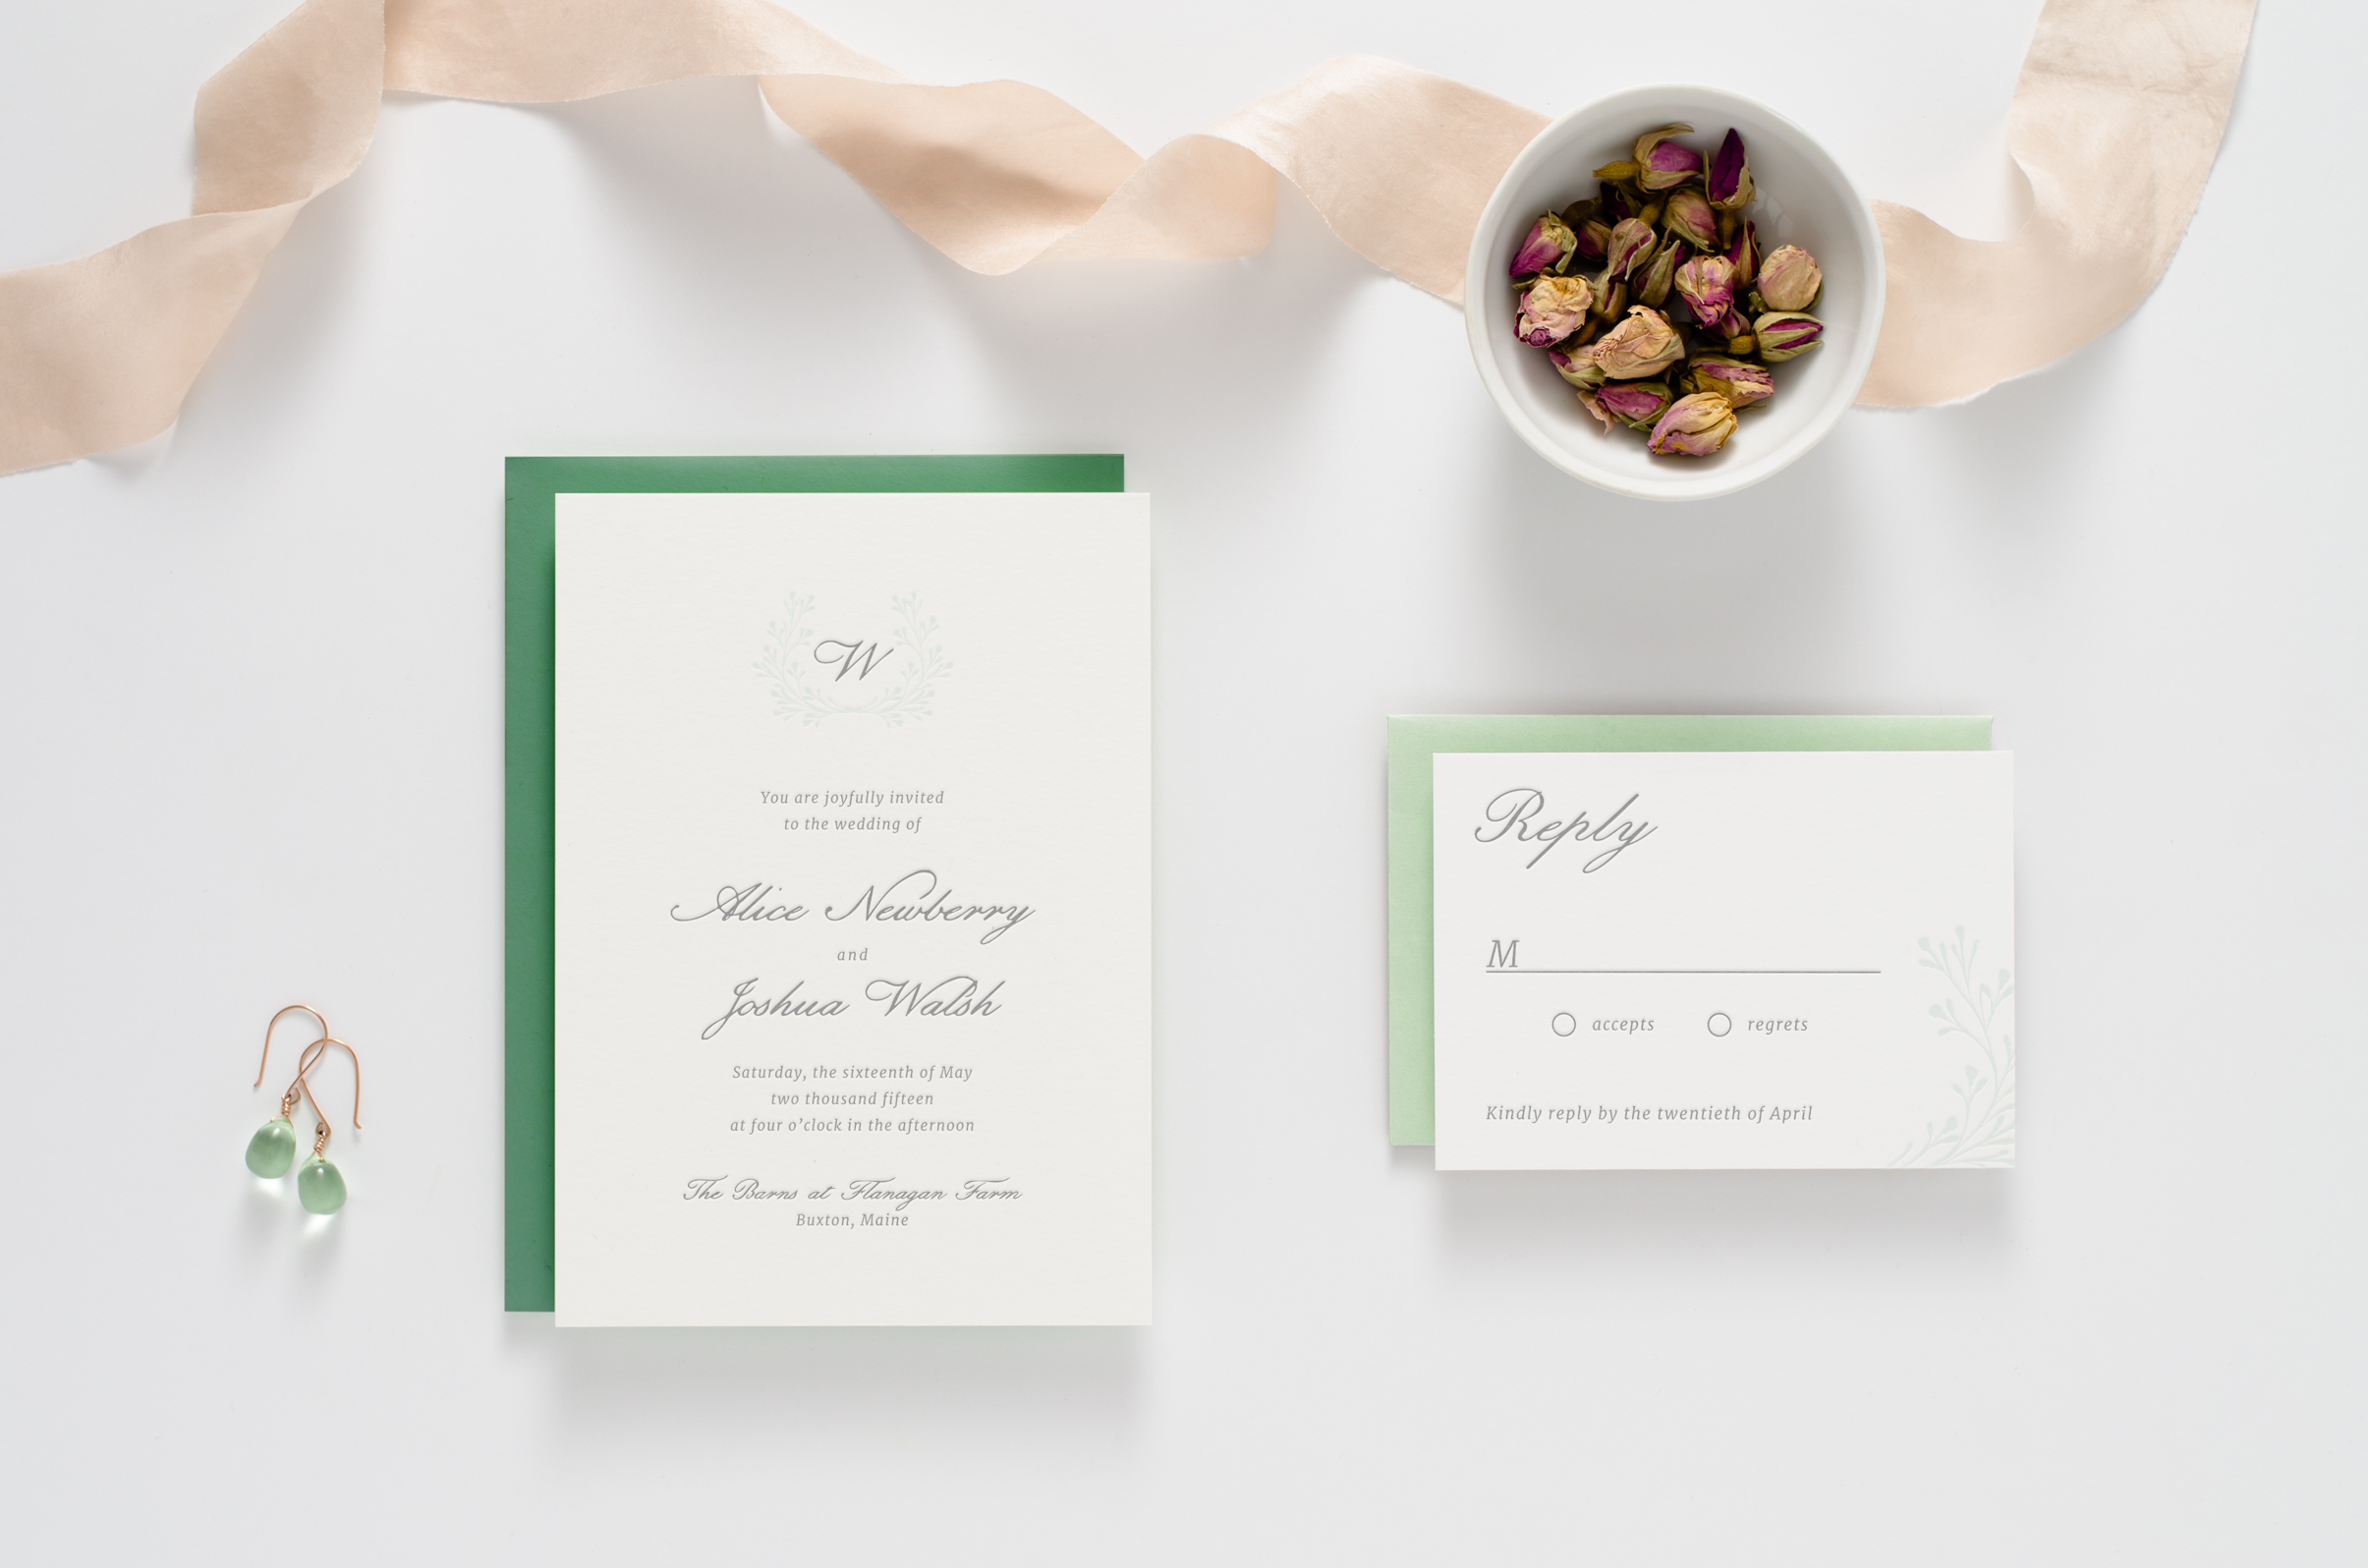 Understated, sweet, natural-themed letterpress wedding invitation suite